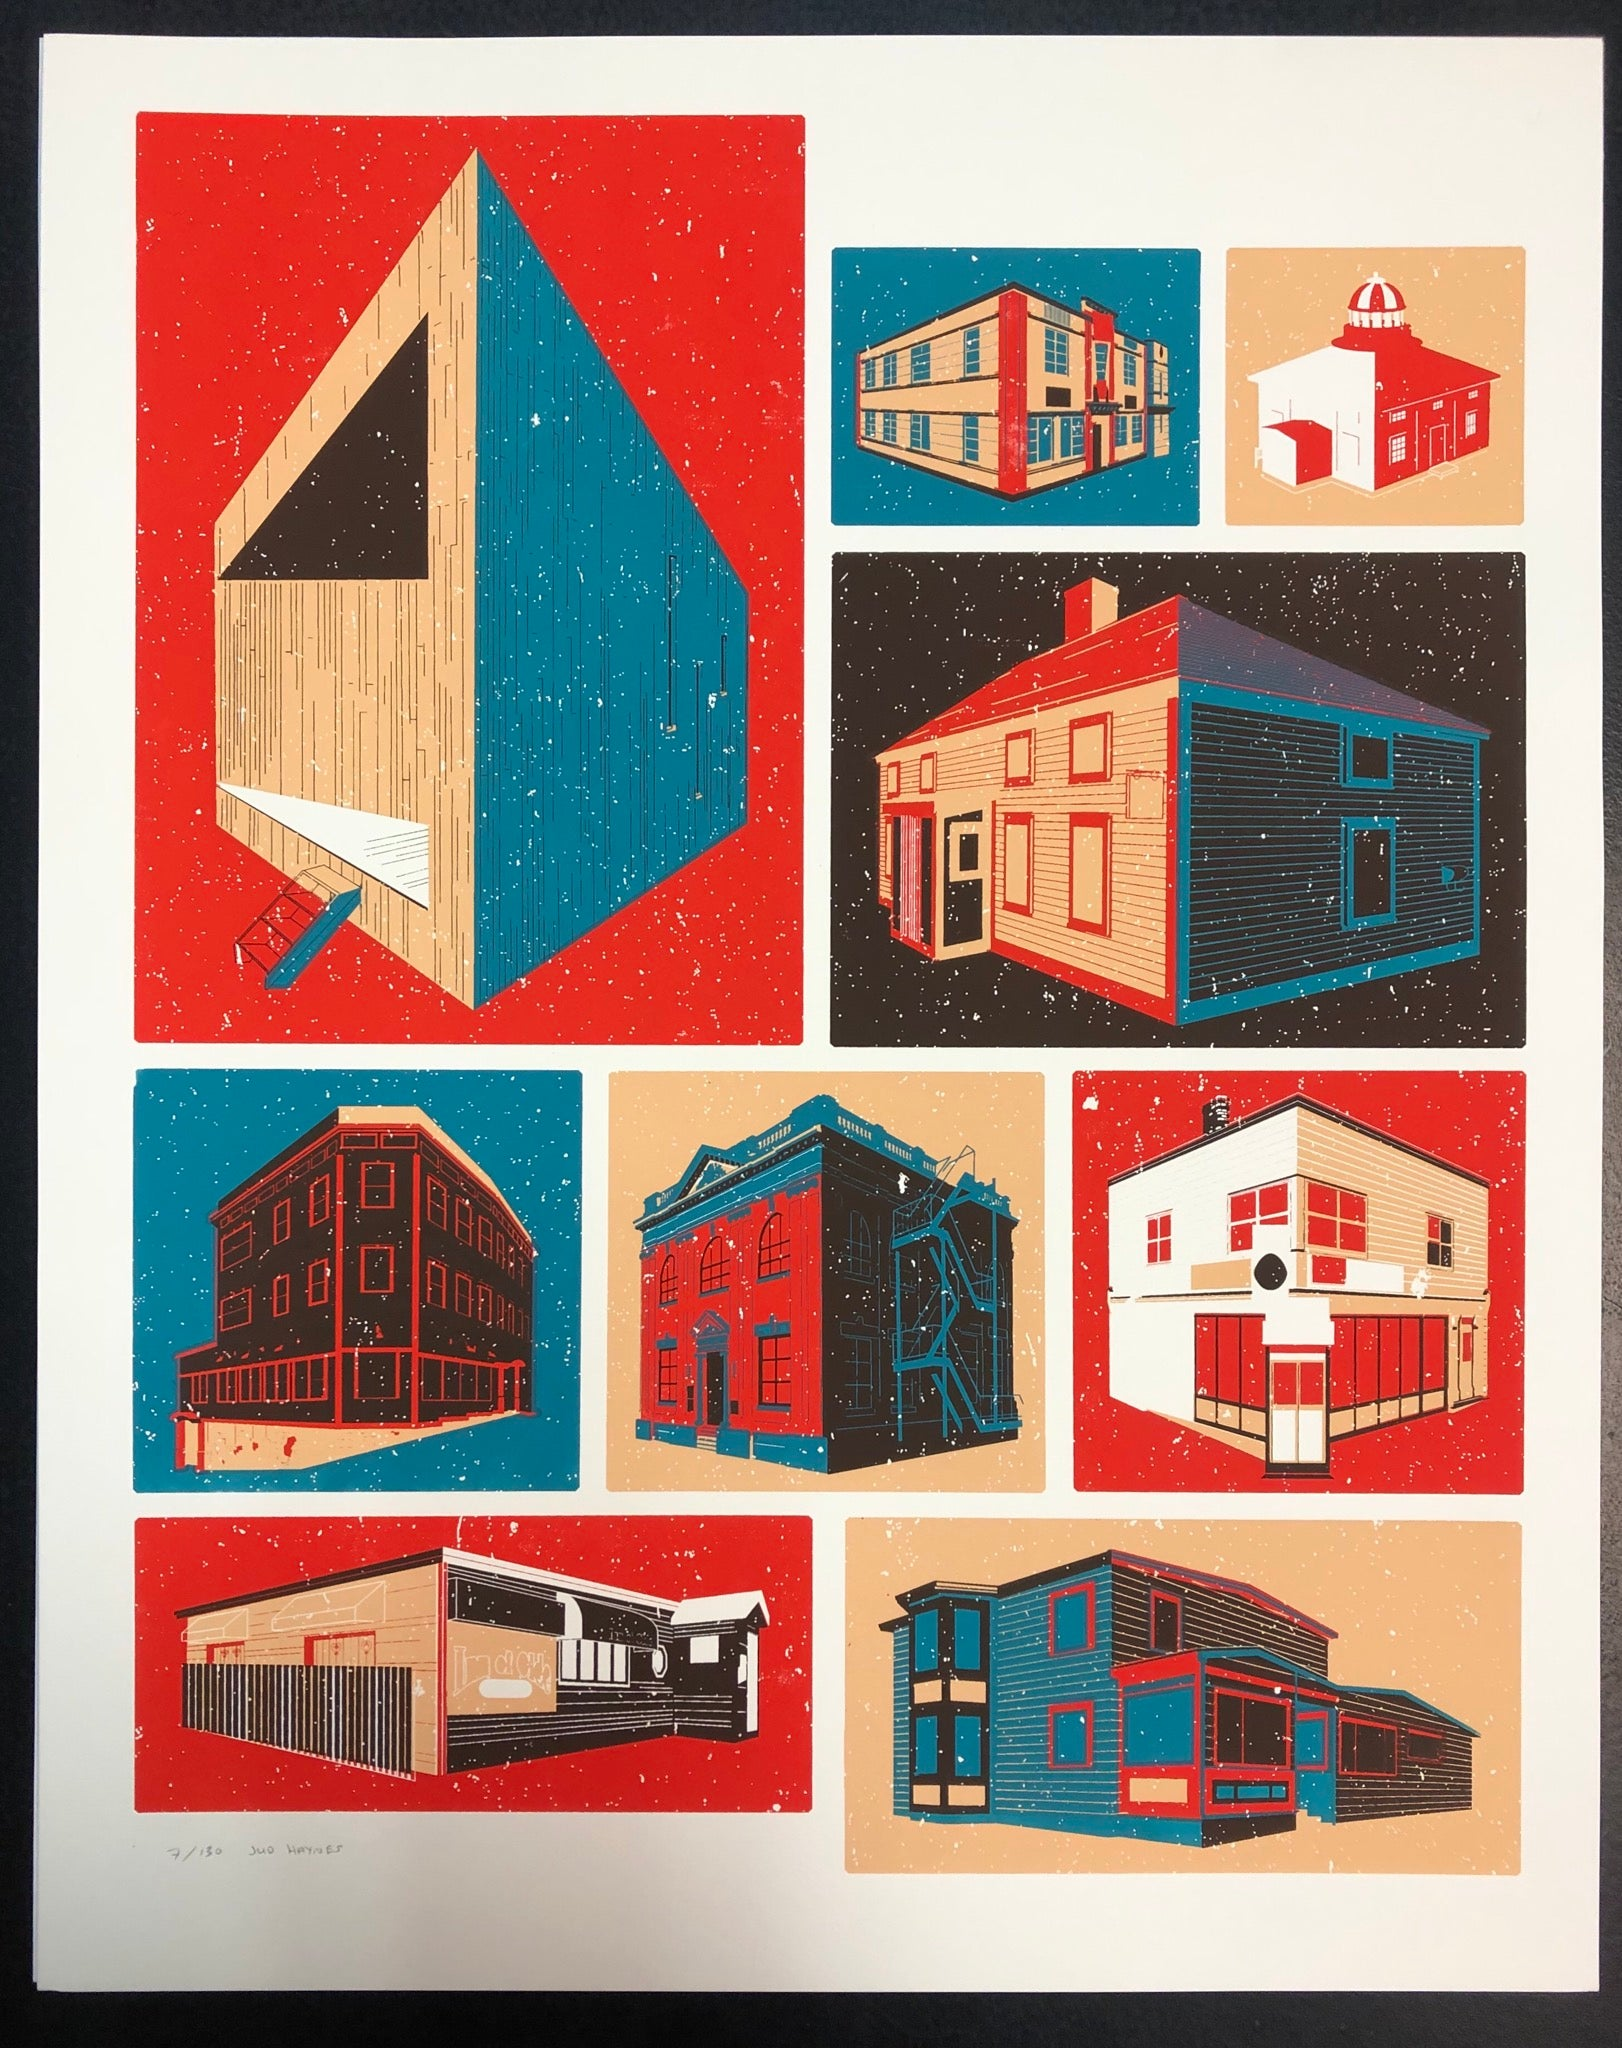 Newfoundland Buildings Print (16 X 20)